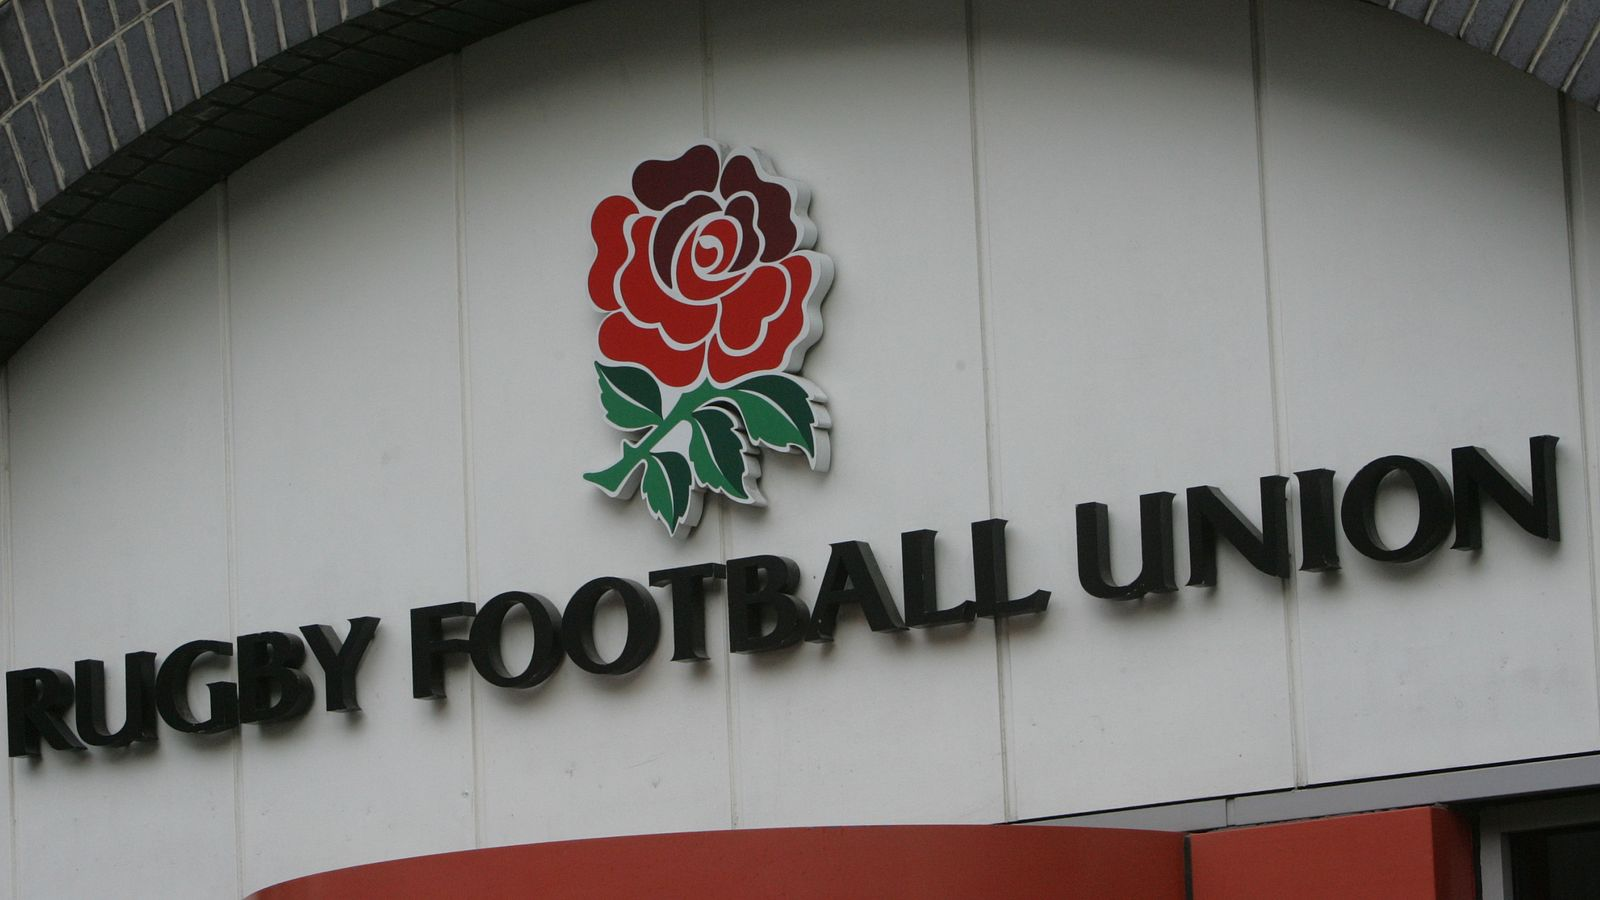 RFU to reduce tackle height in junior games for all ages from shoulder to armpit, for player welfare